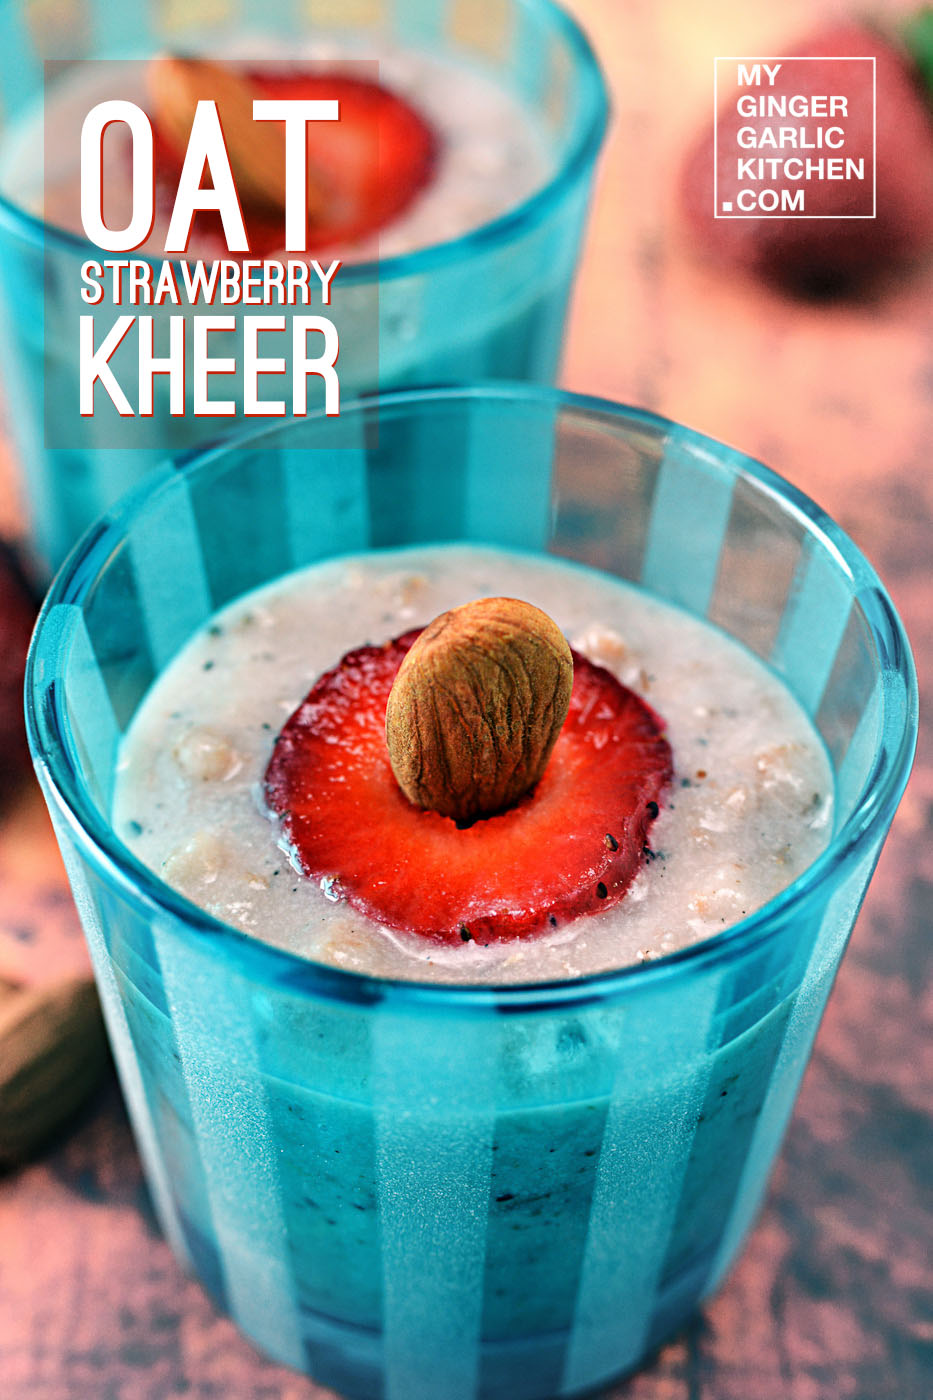 Image of Oat Strawberry Kheer – Oat Strawberry Pudding